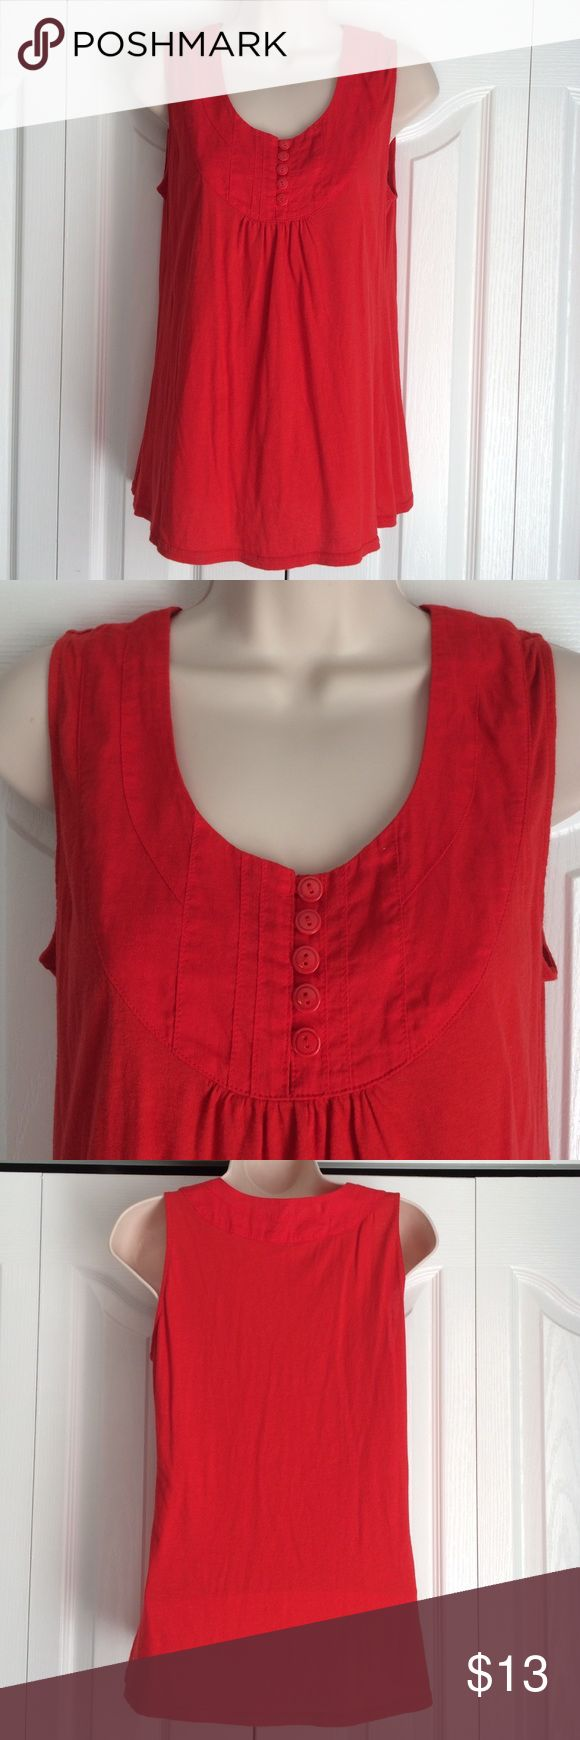 """Fossil Top Adorable """"smocked"""" tank. Buttons on smocked neckline are functional. Dark Coral/red 60% cotton 40% modal. Gently pre loved. Fossil Tops Tank Tops"""